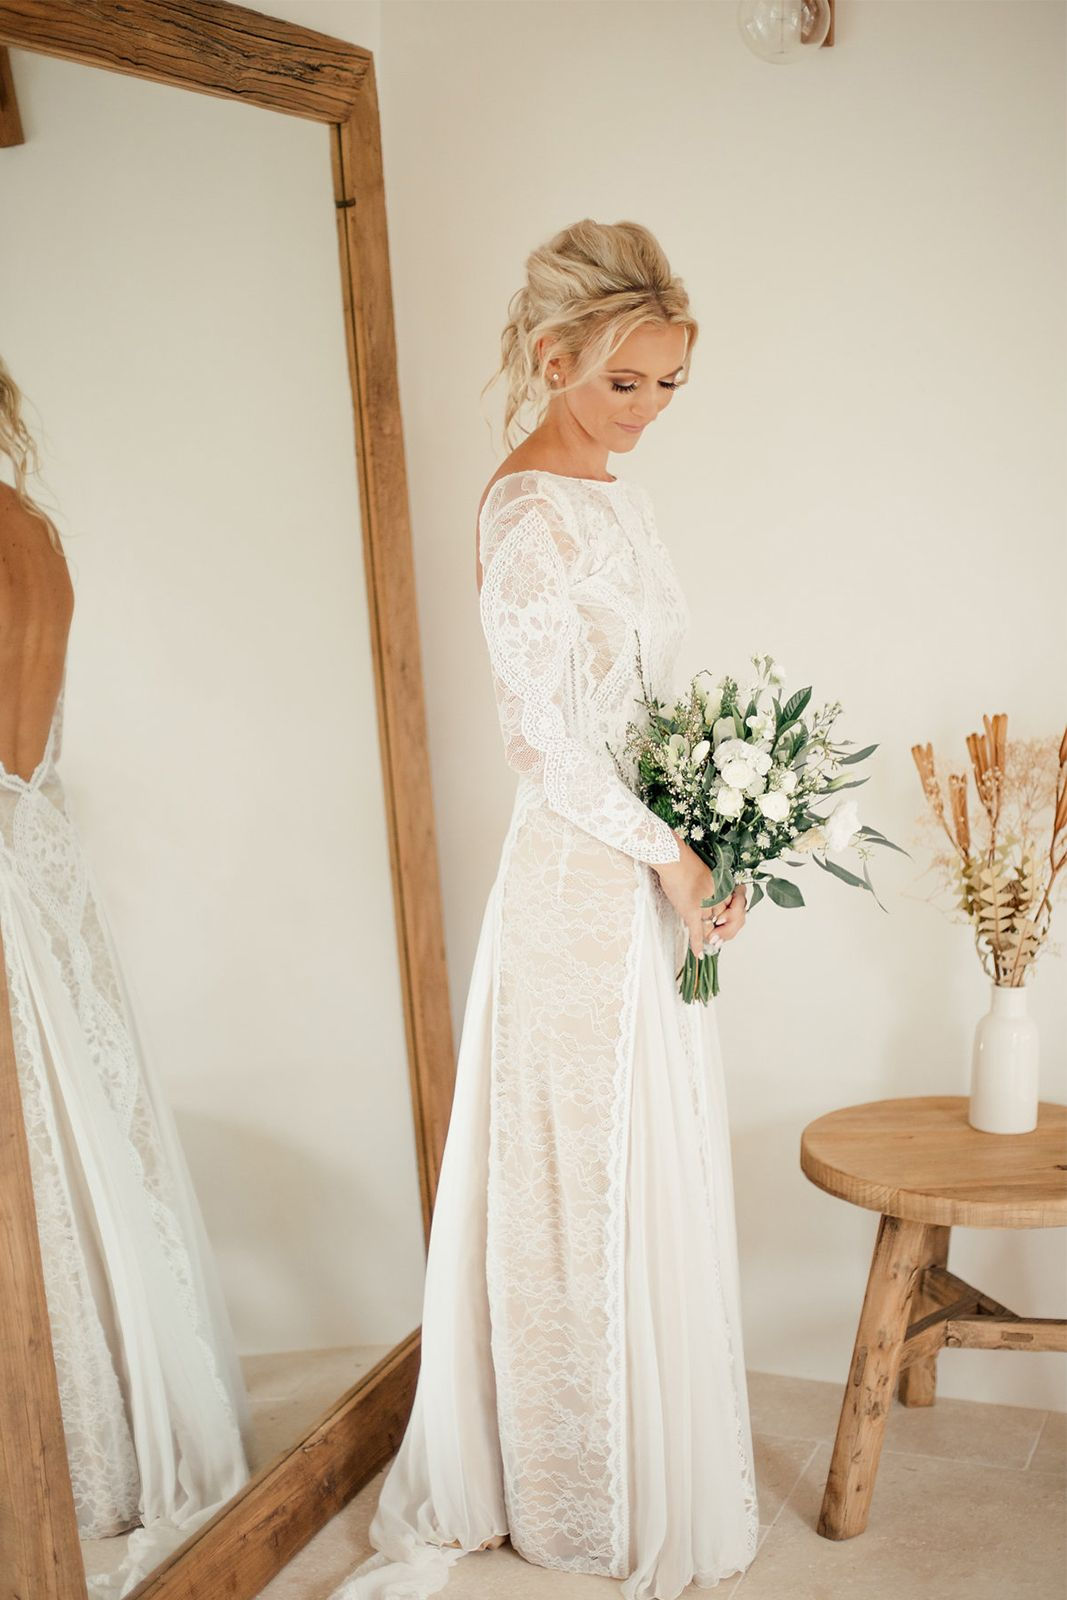 32 winter wedding dresses perfect for a cold day winter weddings 32 winter wedding dresses perfect for a cold day ombrellifo Image collections